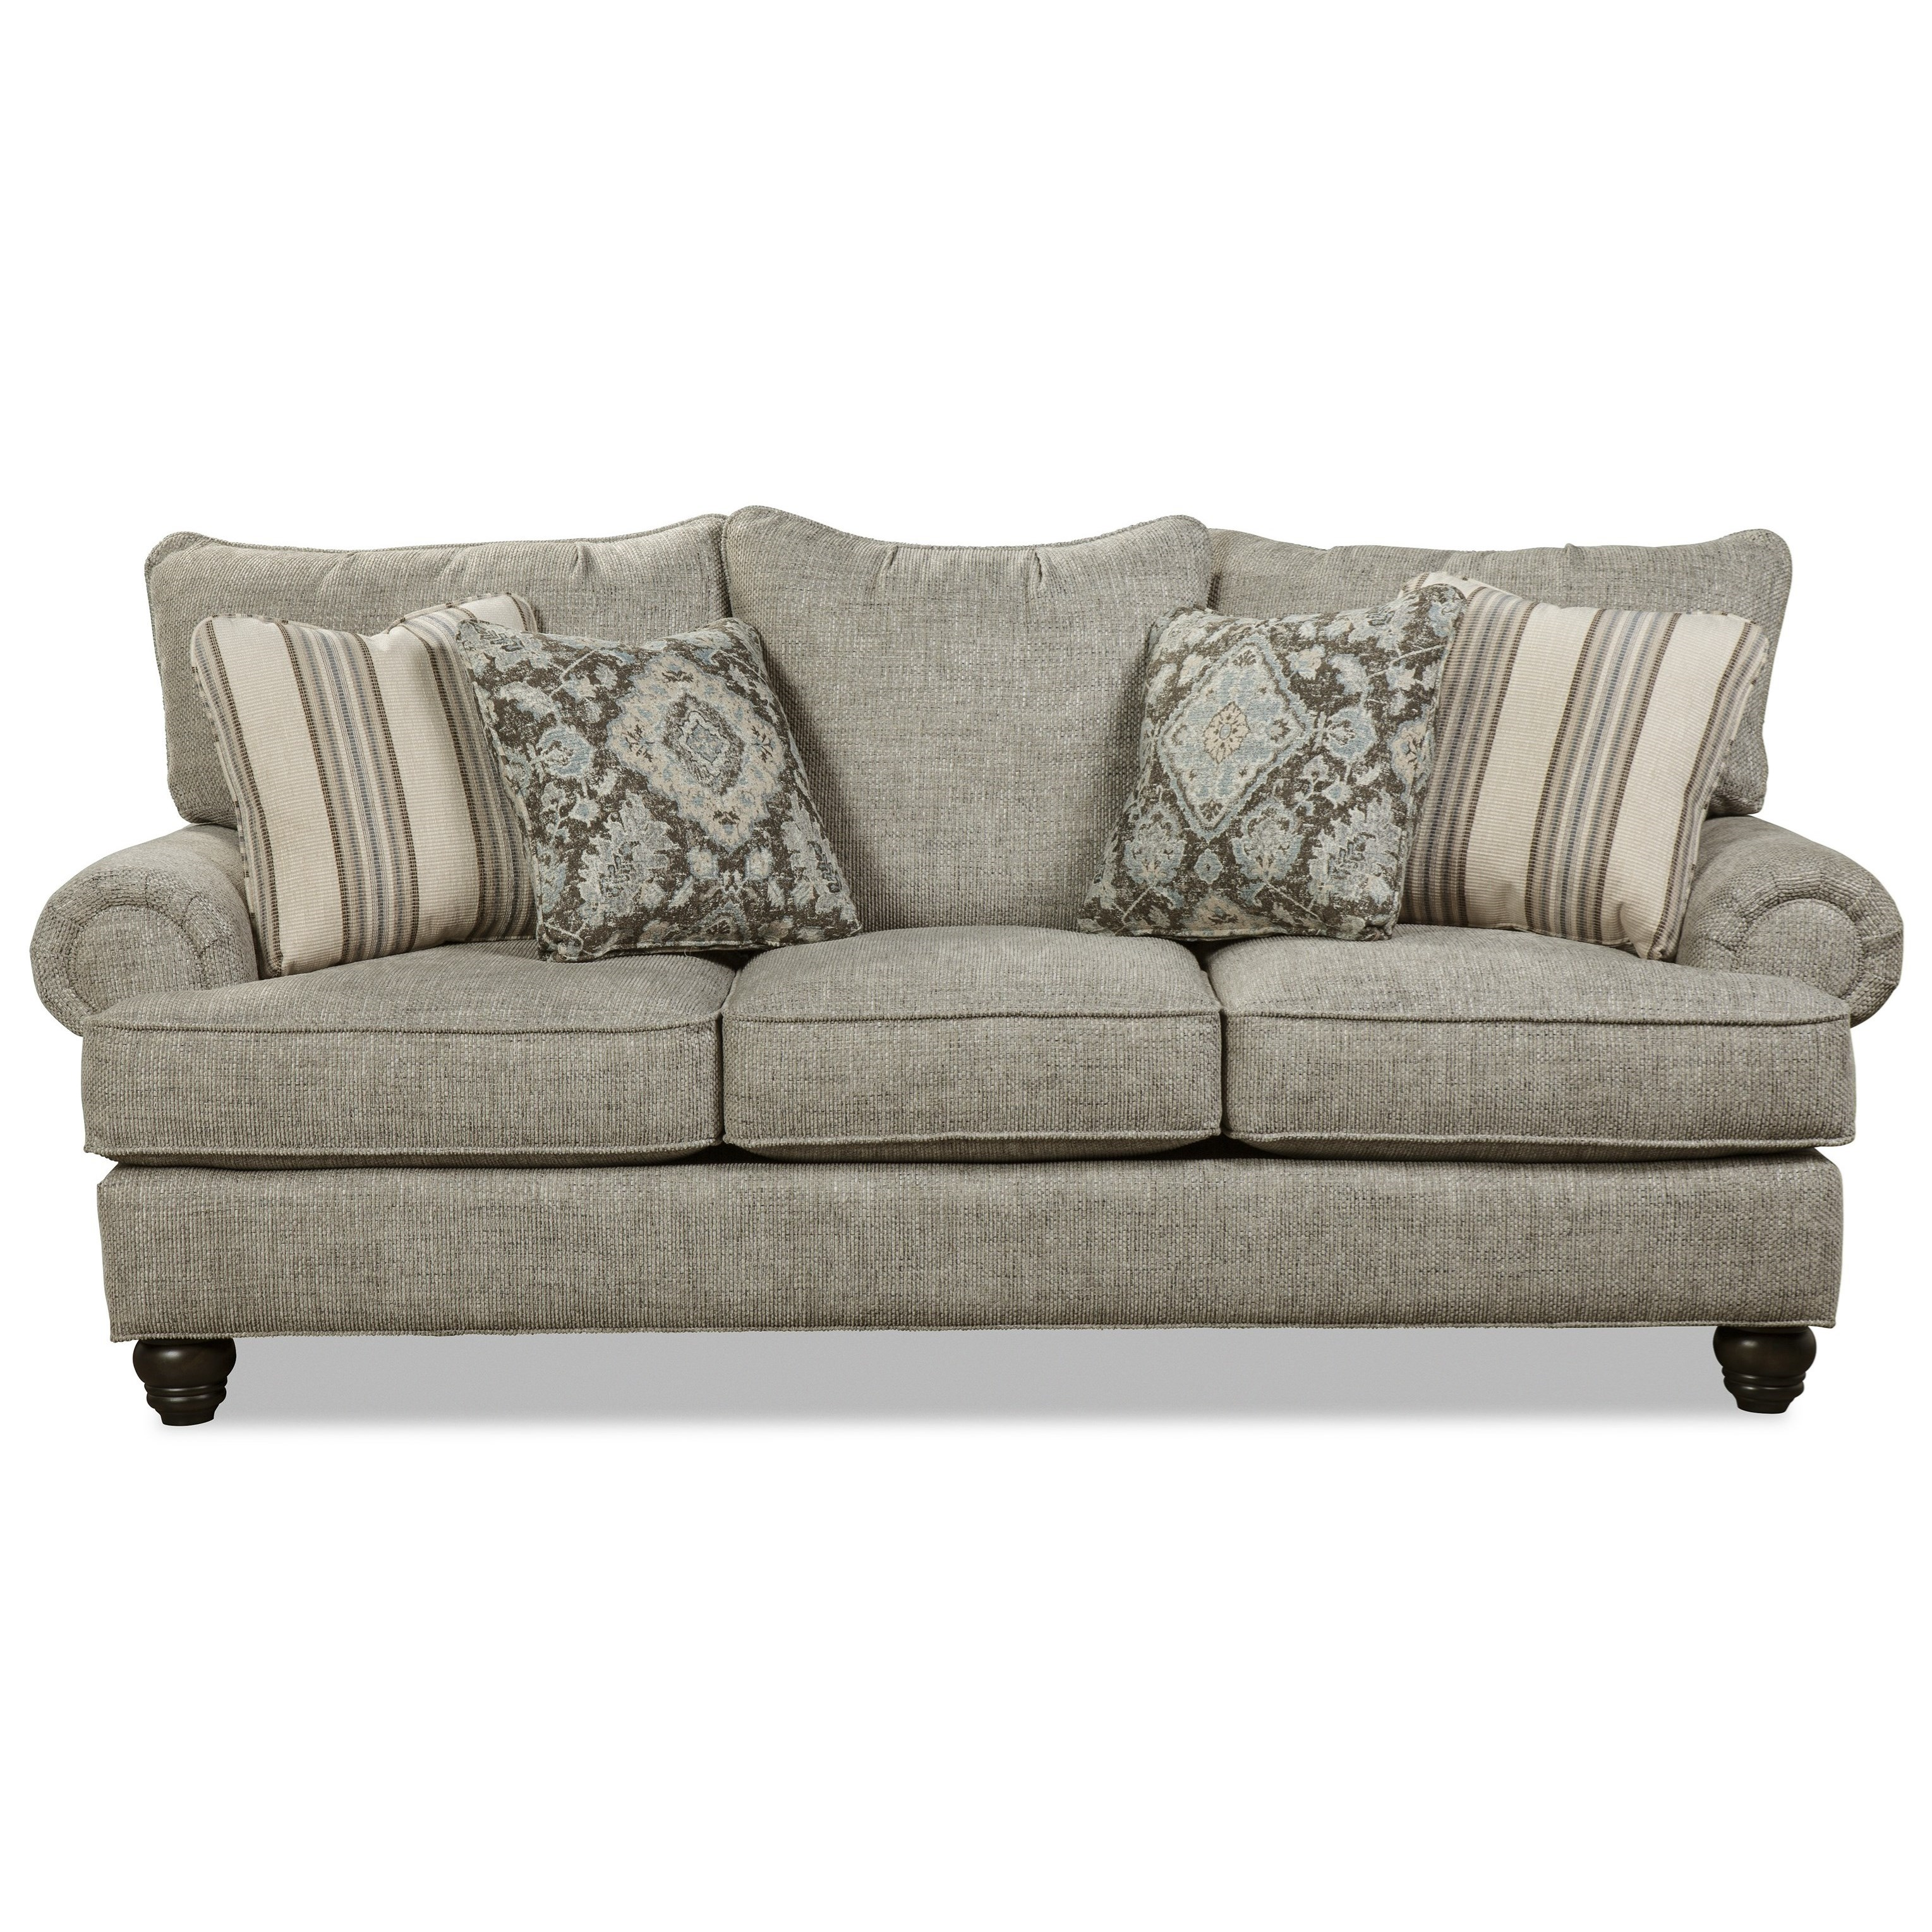 700450 Sofa by Craftmaster at Lindy's Furniture Company